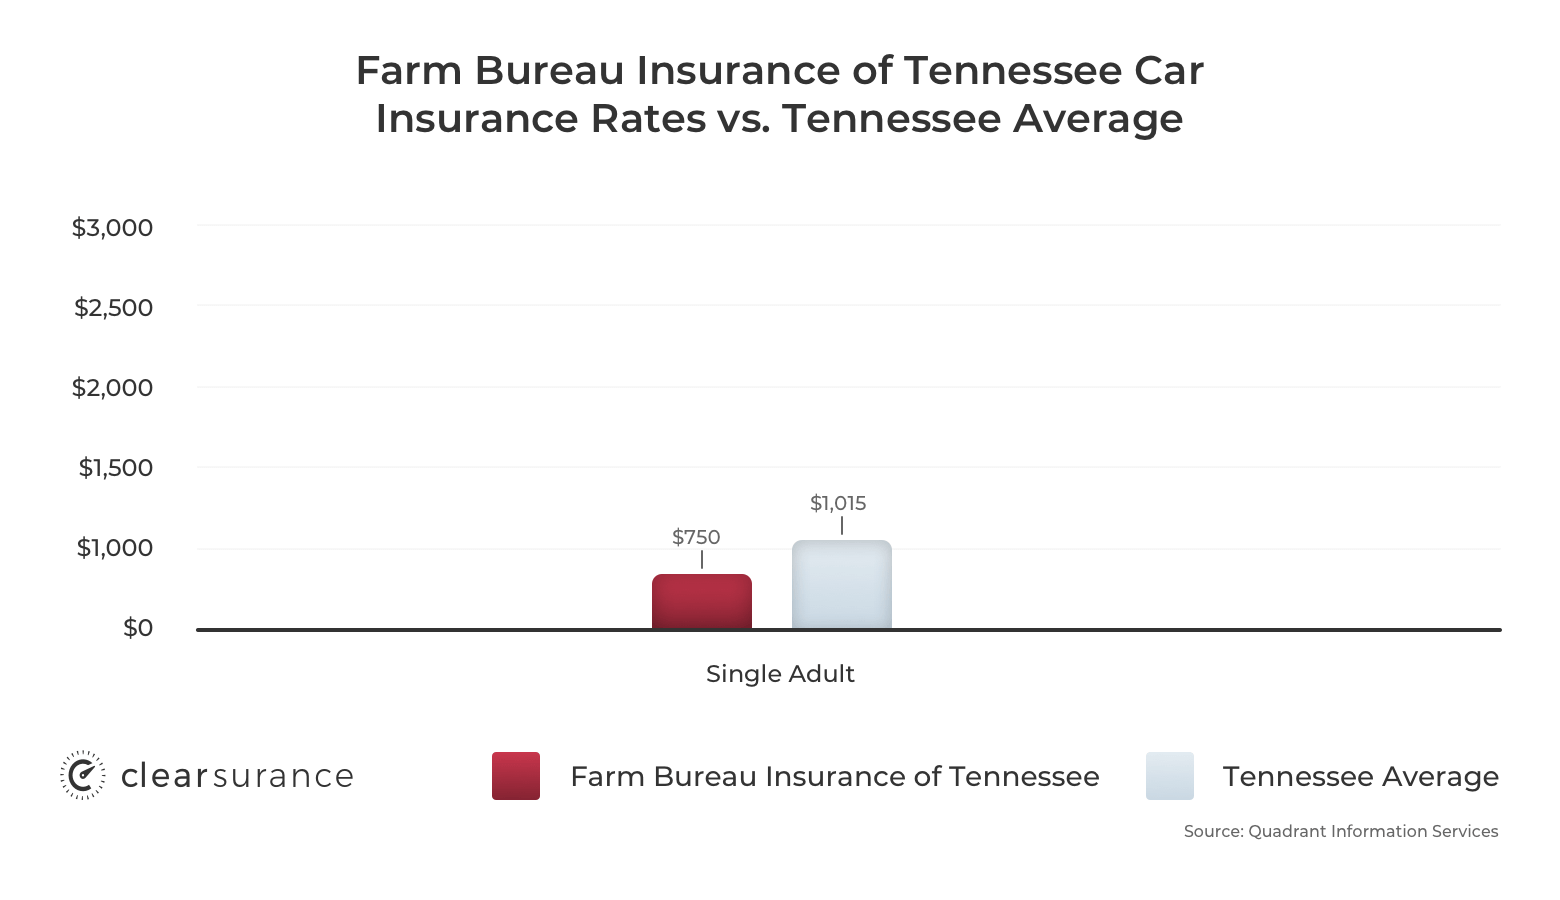 Farm Bureau Insurance of Tennessee car insurance rates vs the Tennessee average